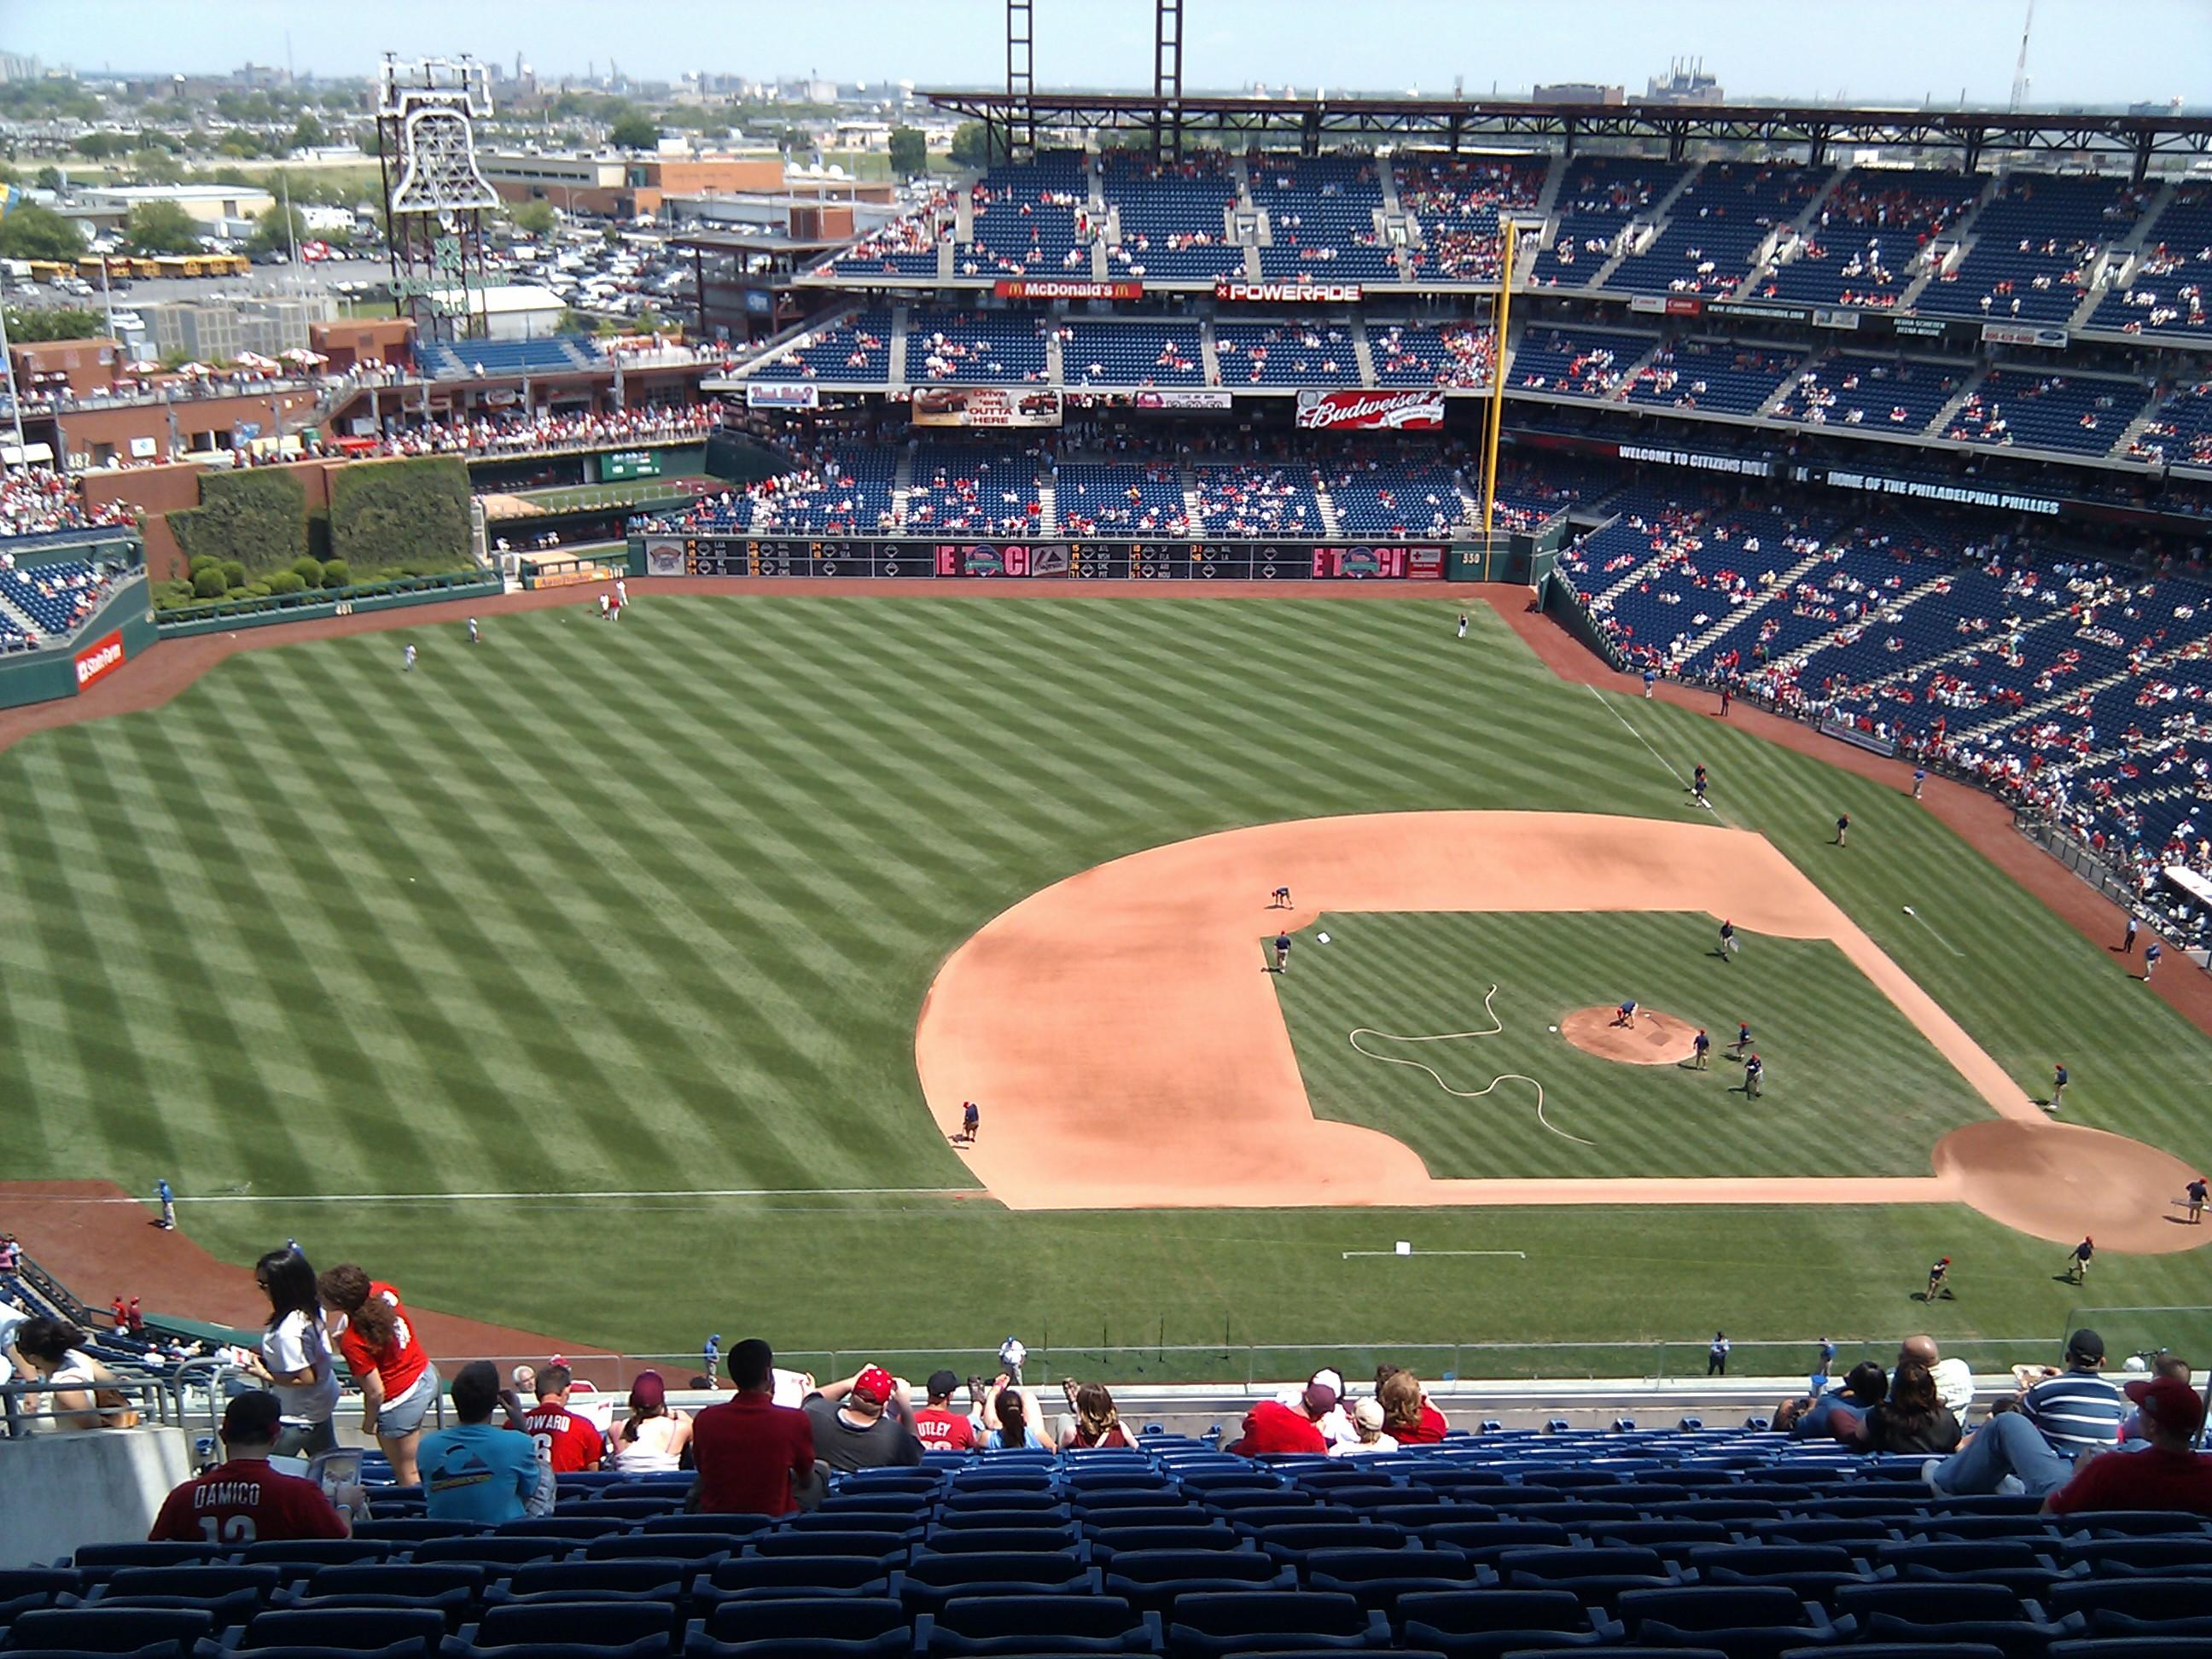 Citizens Bank Park Section 427 Row 16 Seat 16